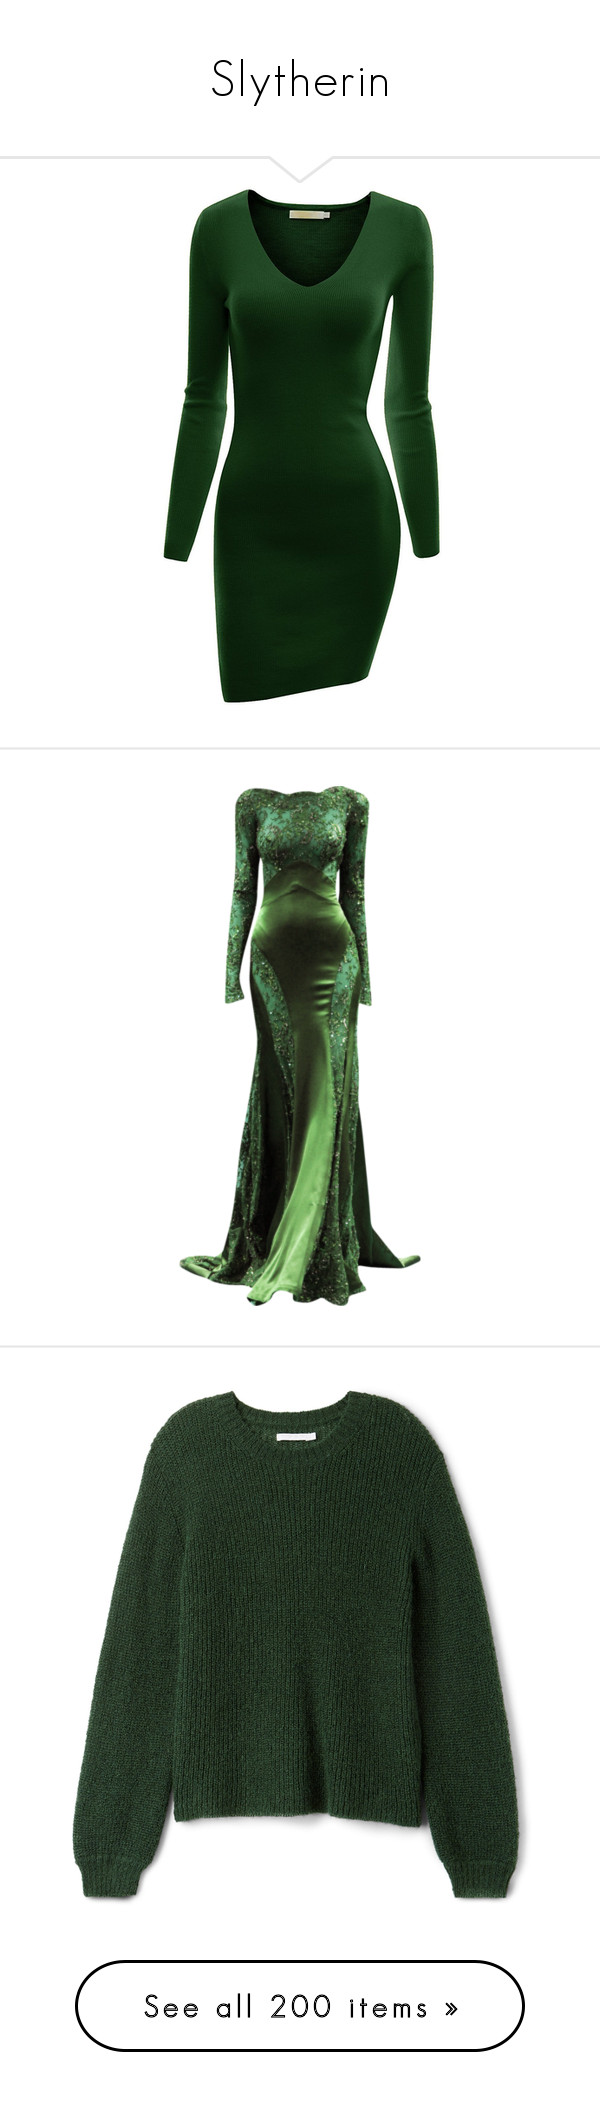 Green long sleeve cocktail dress  Slytherin